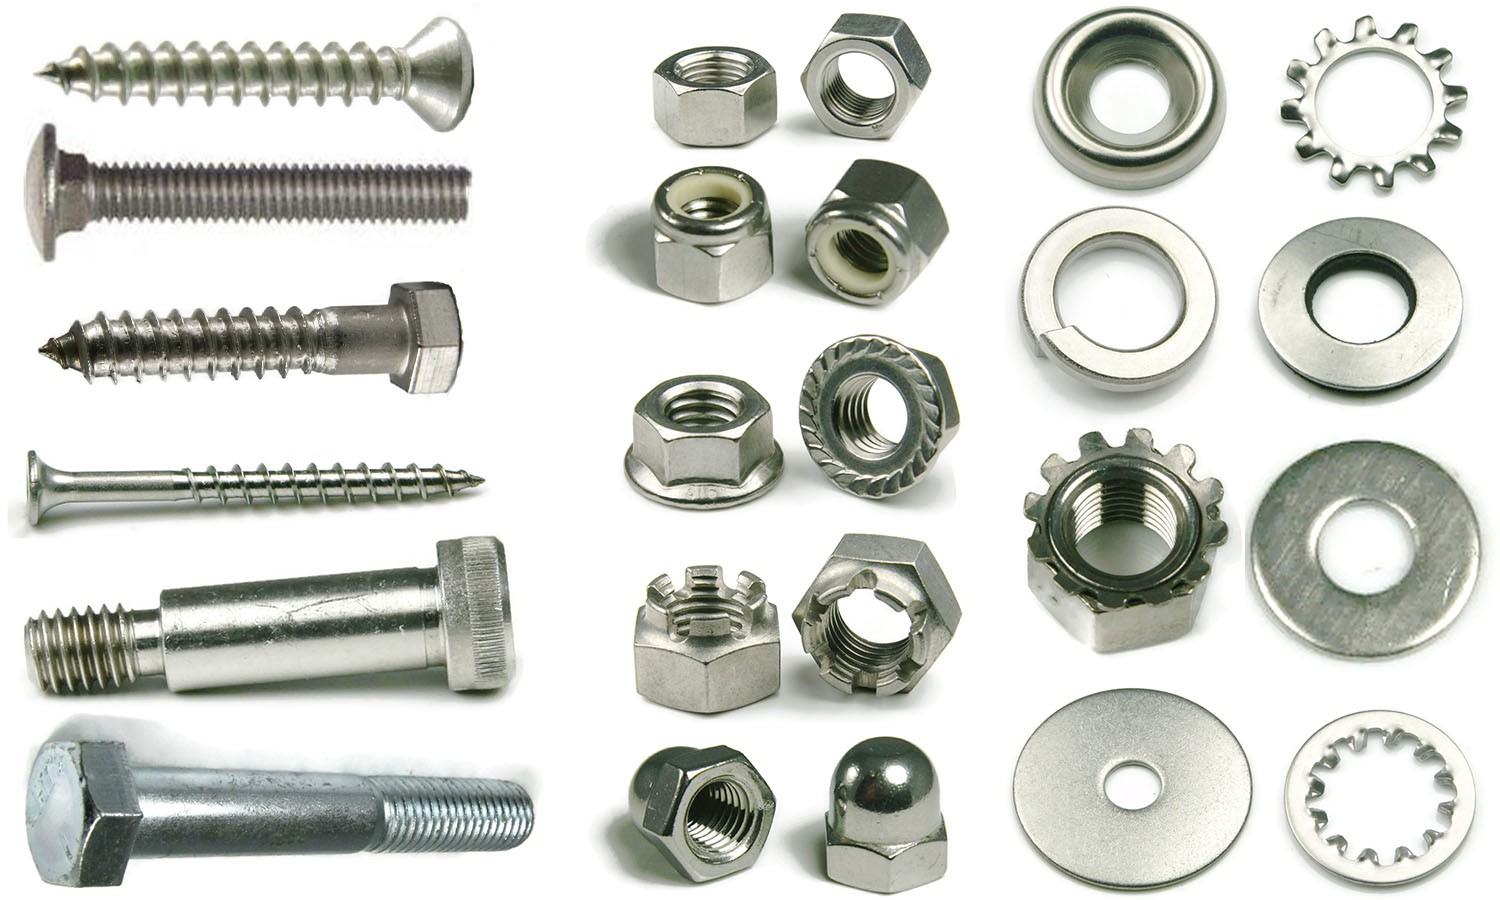 Get An Idea About The Types of Fasteners and Their Applications | by McCoy  Mart | Medium